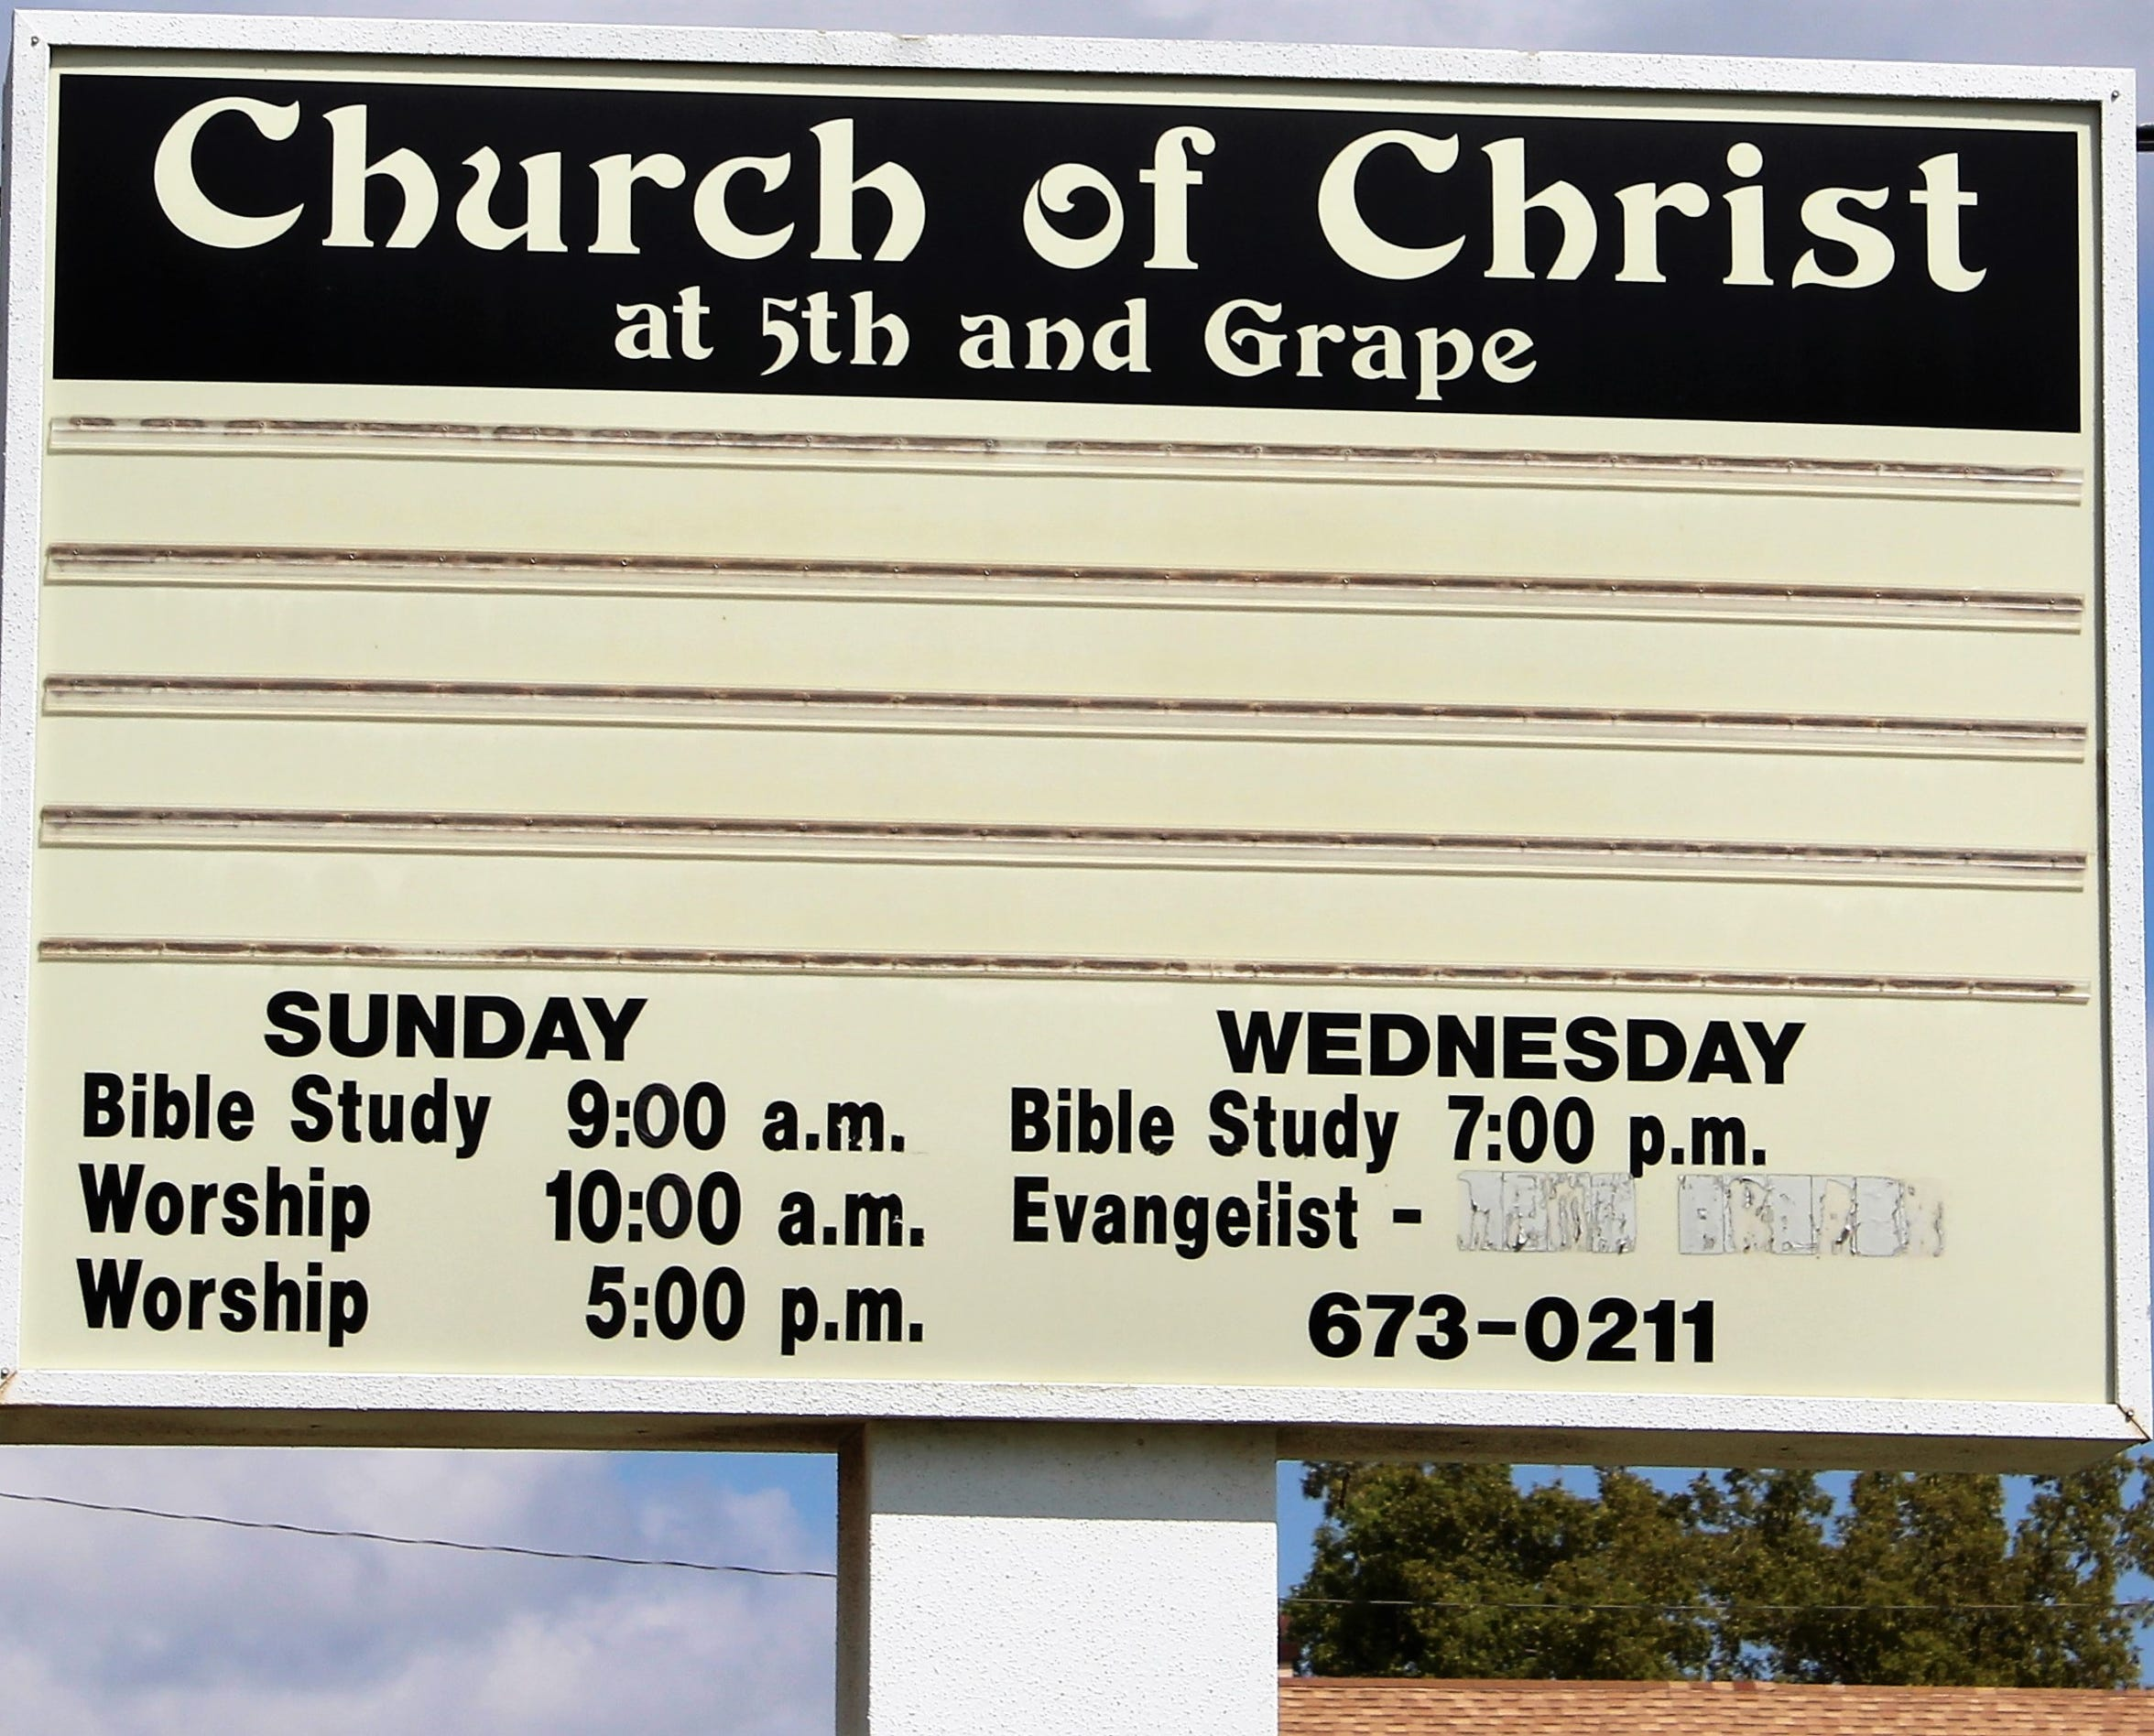 The sign at North Fifth Street and Grape Church of Christ is blank, listing no activities or inspirational message and no minister.